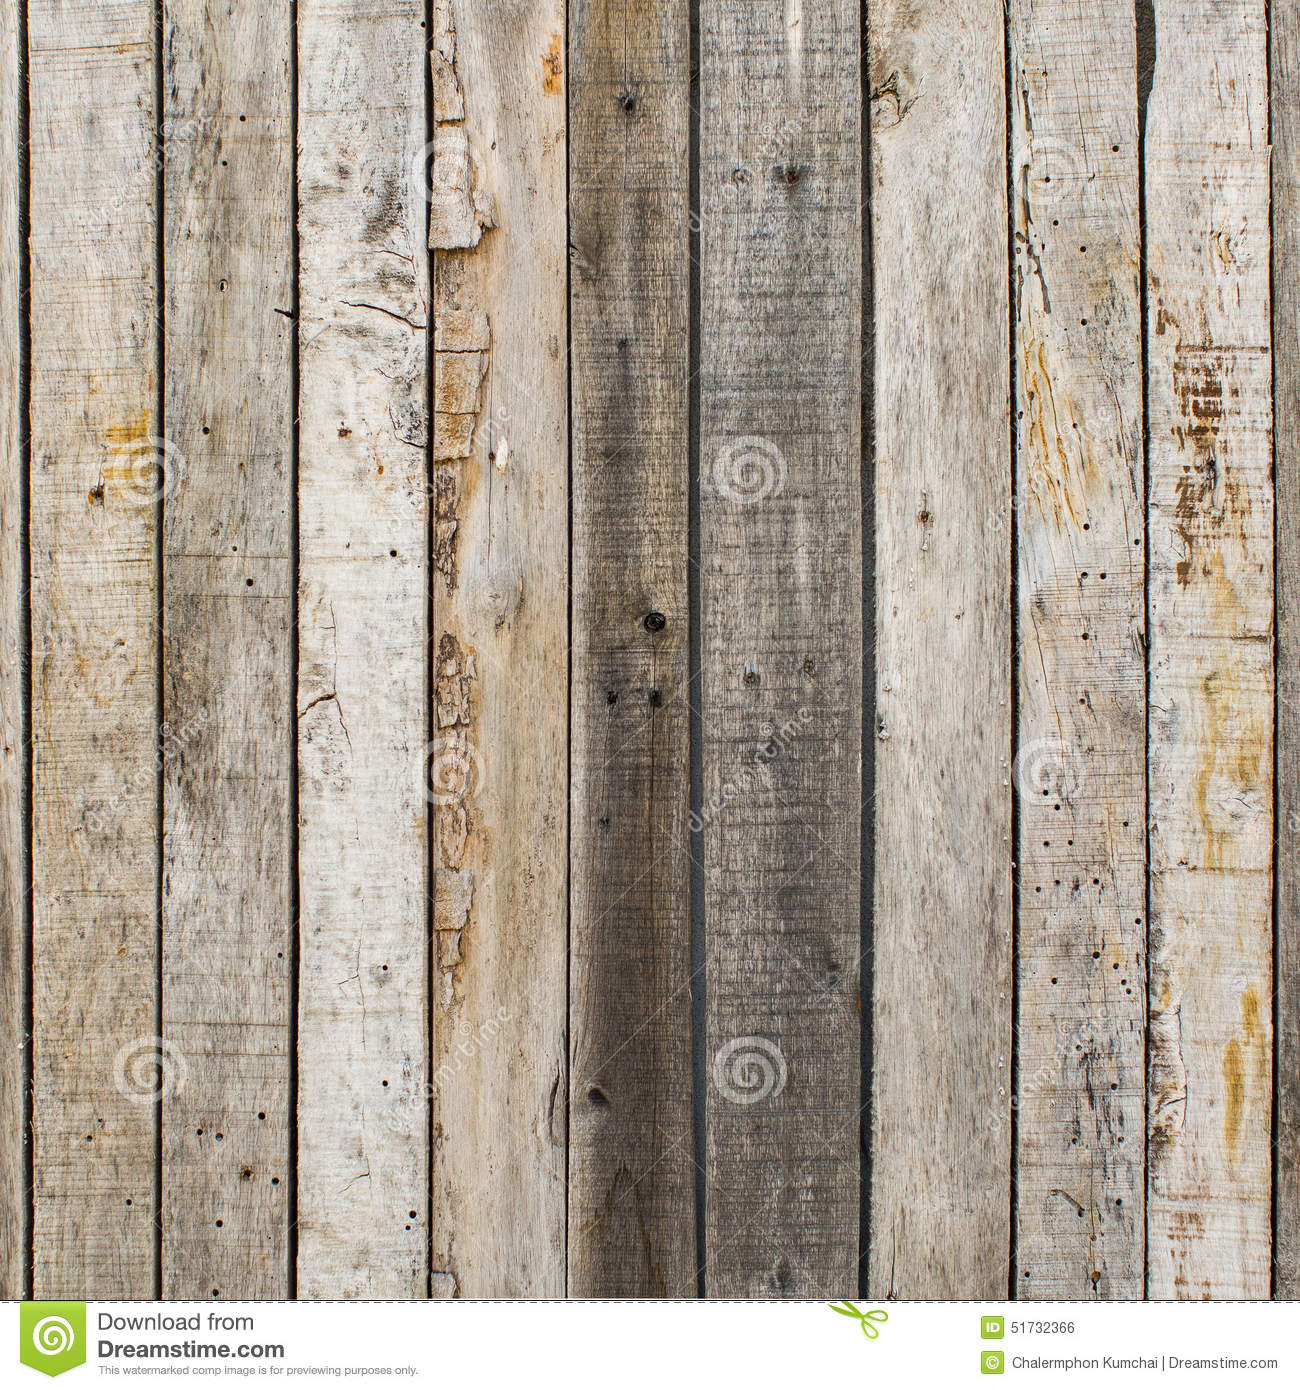 Weathered Barn Wood : Stock Photo: Rustic weathered barn wood background with knots and nail ...